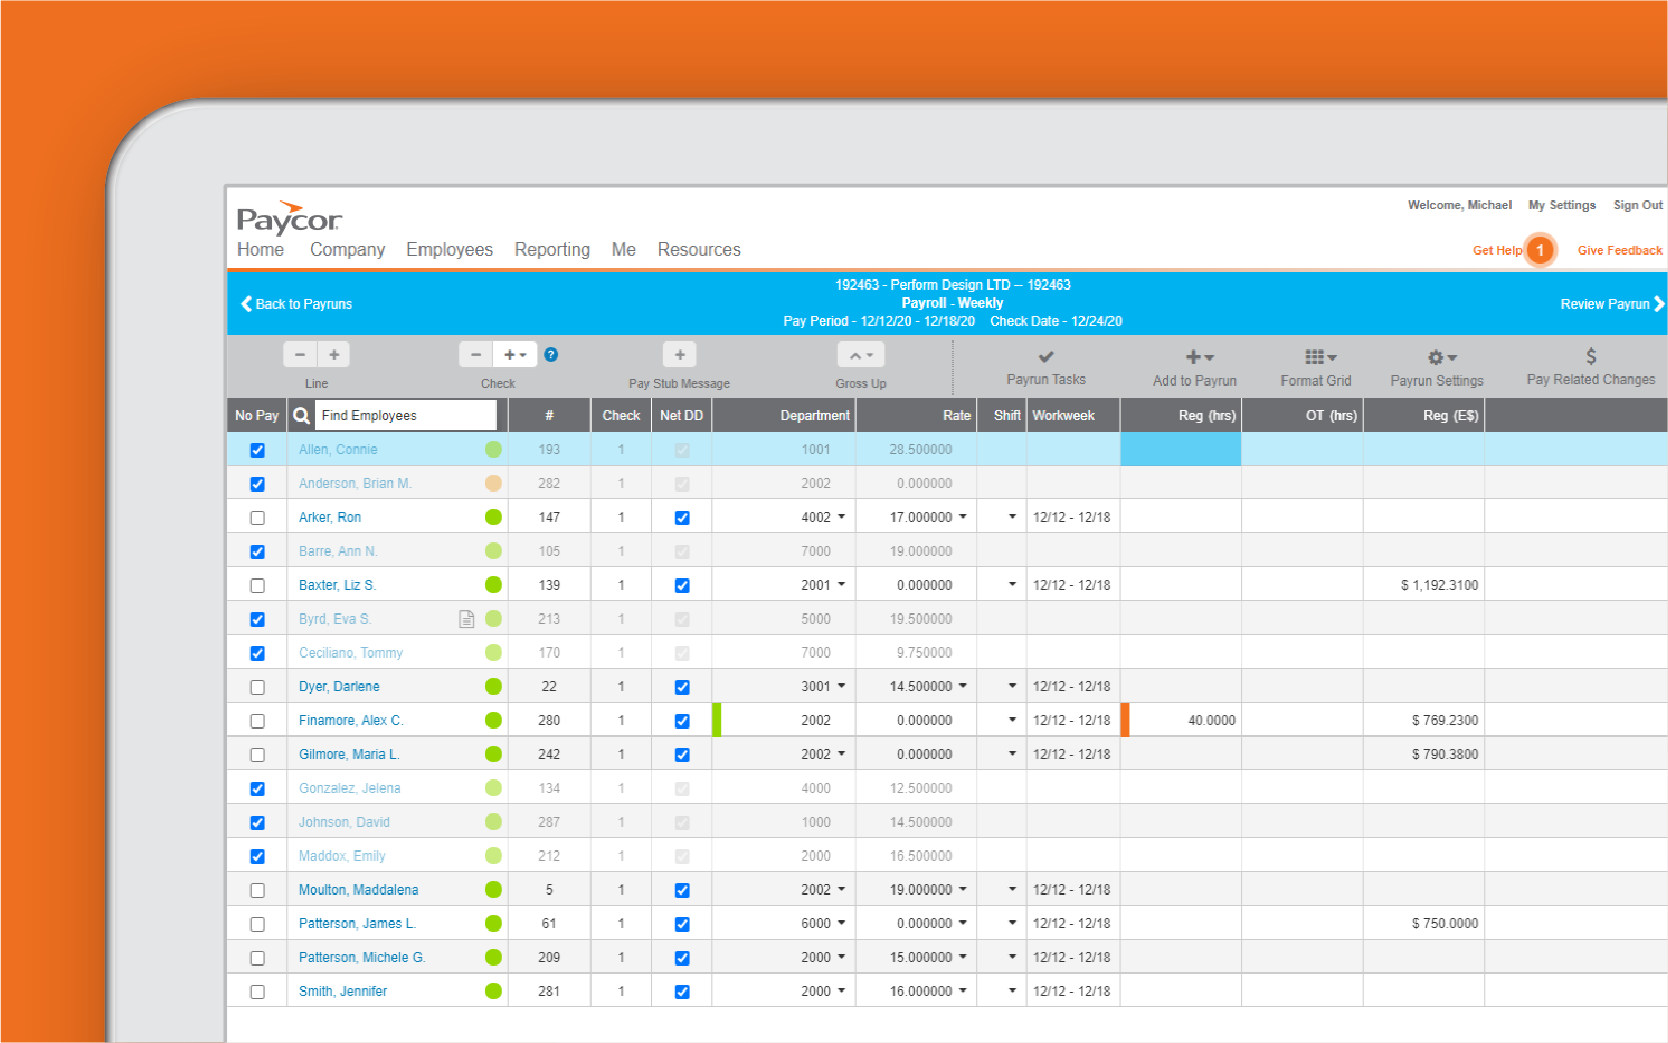 Corner of tablet showing Paycor payroll dashboard against orange background